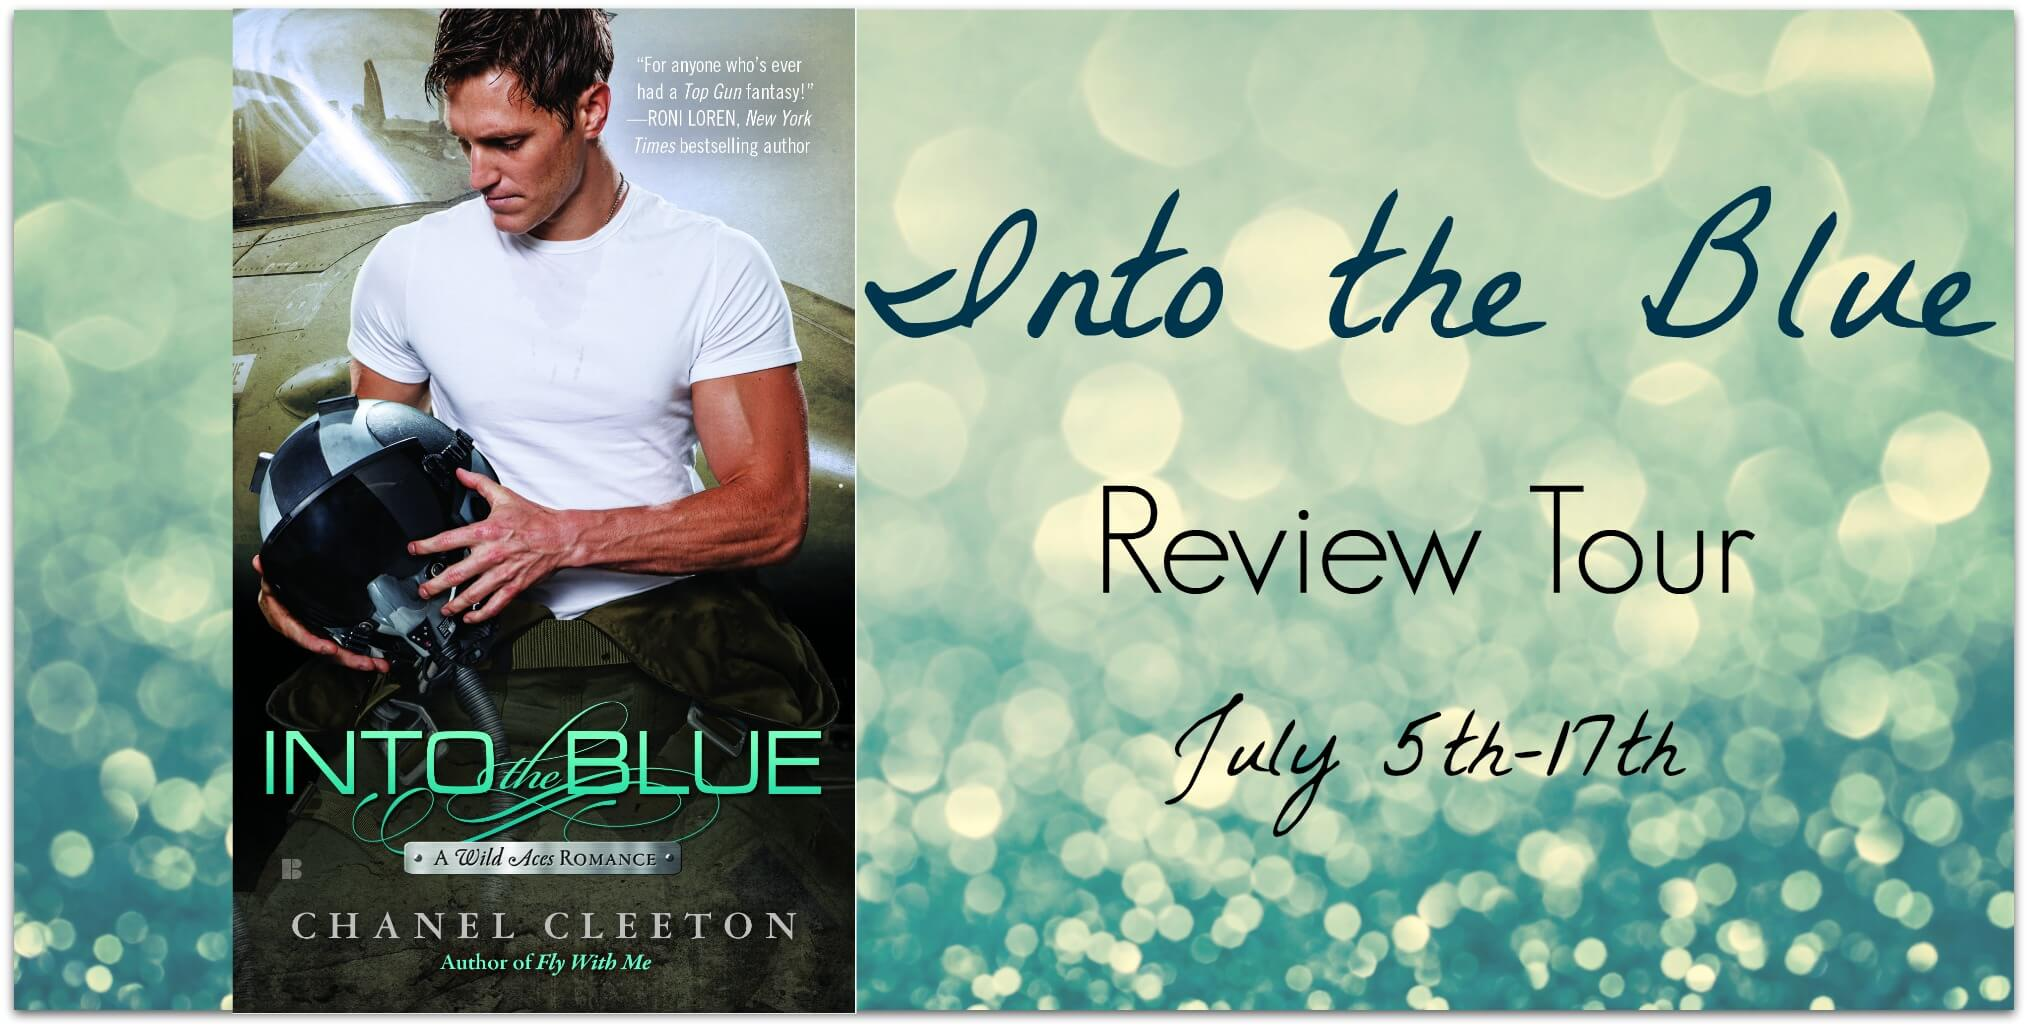 Into the Blue by Chanel Cleeton